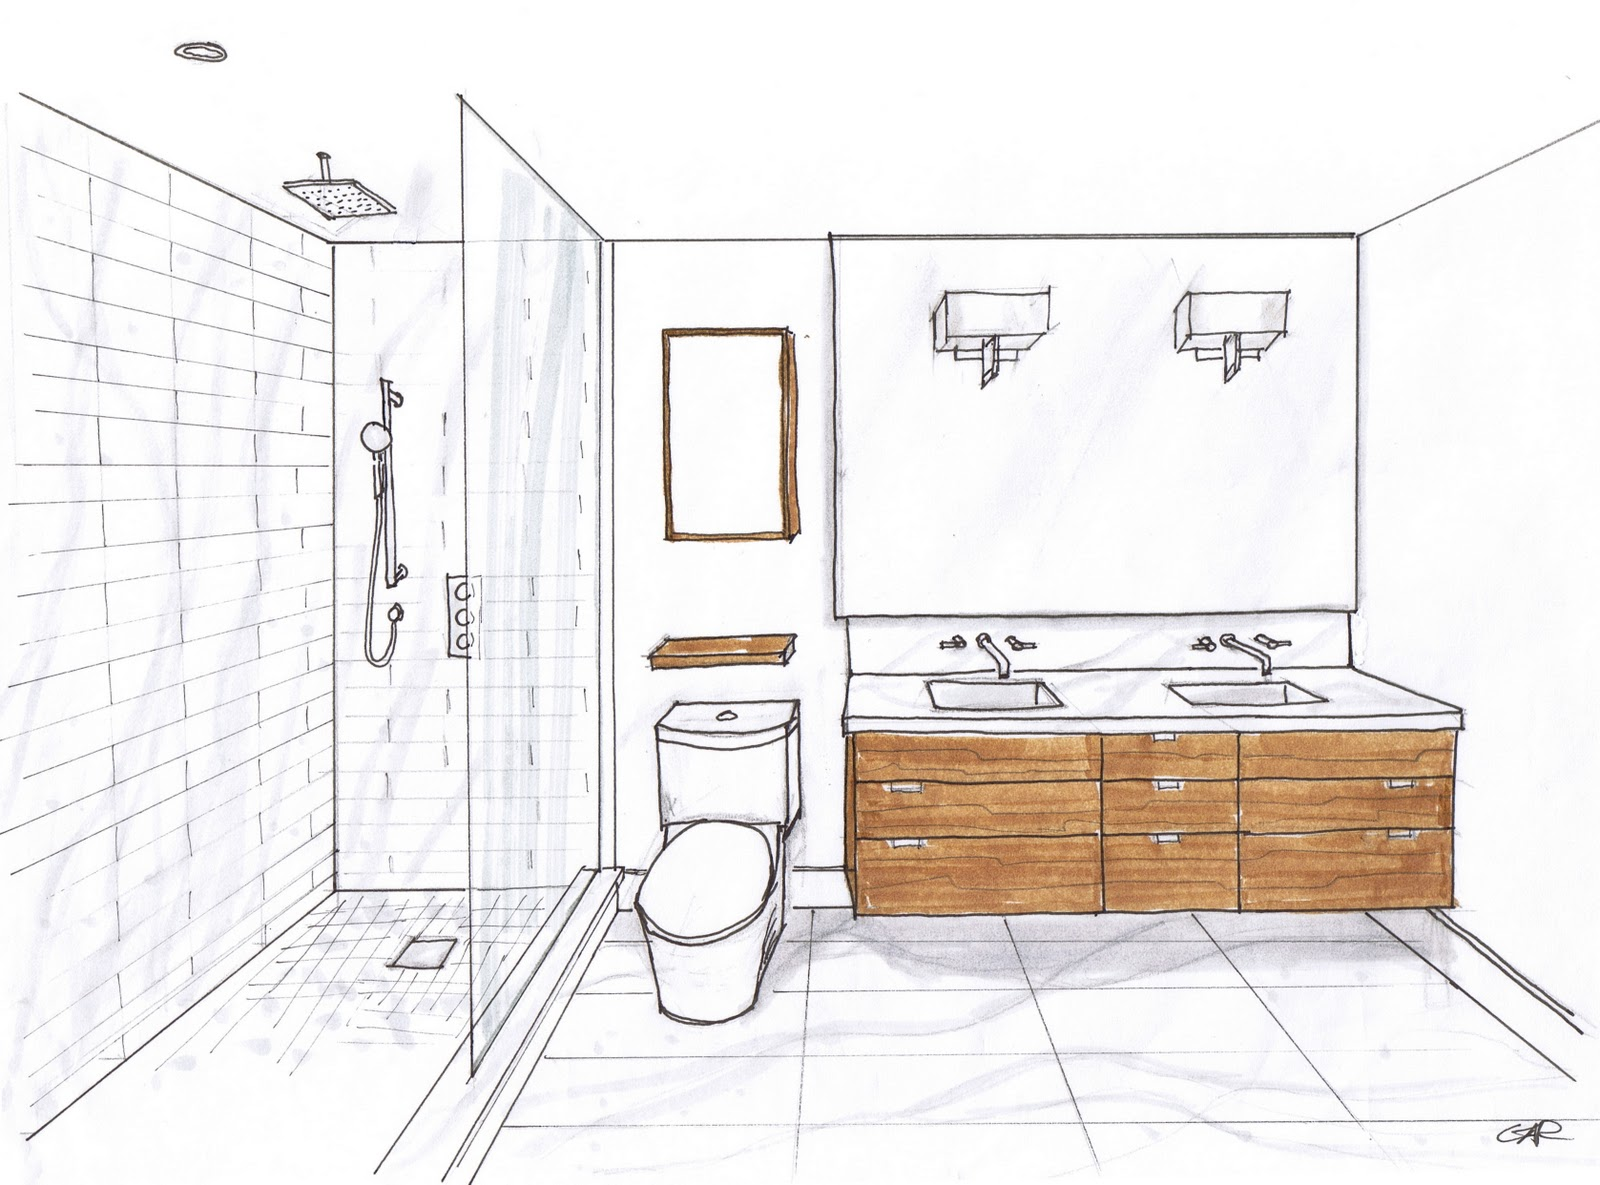 Creed 70 39 s bungalow bathroom designs for Bathroom designs drawing